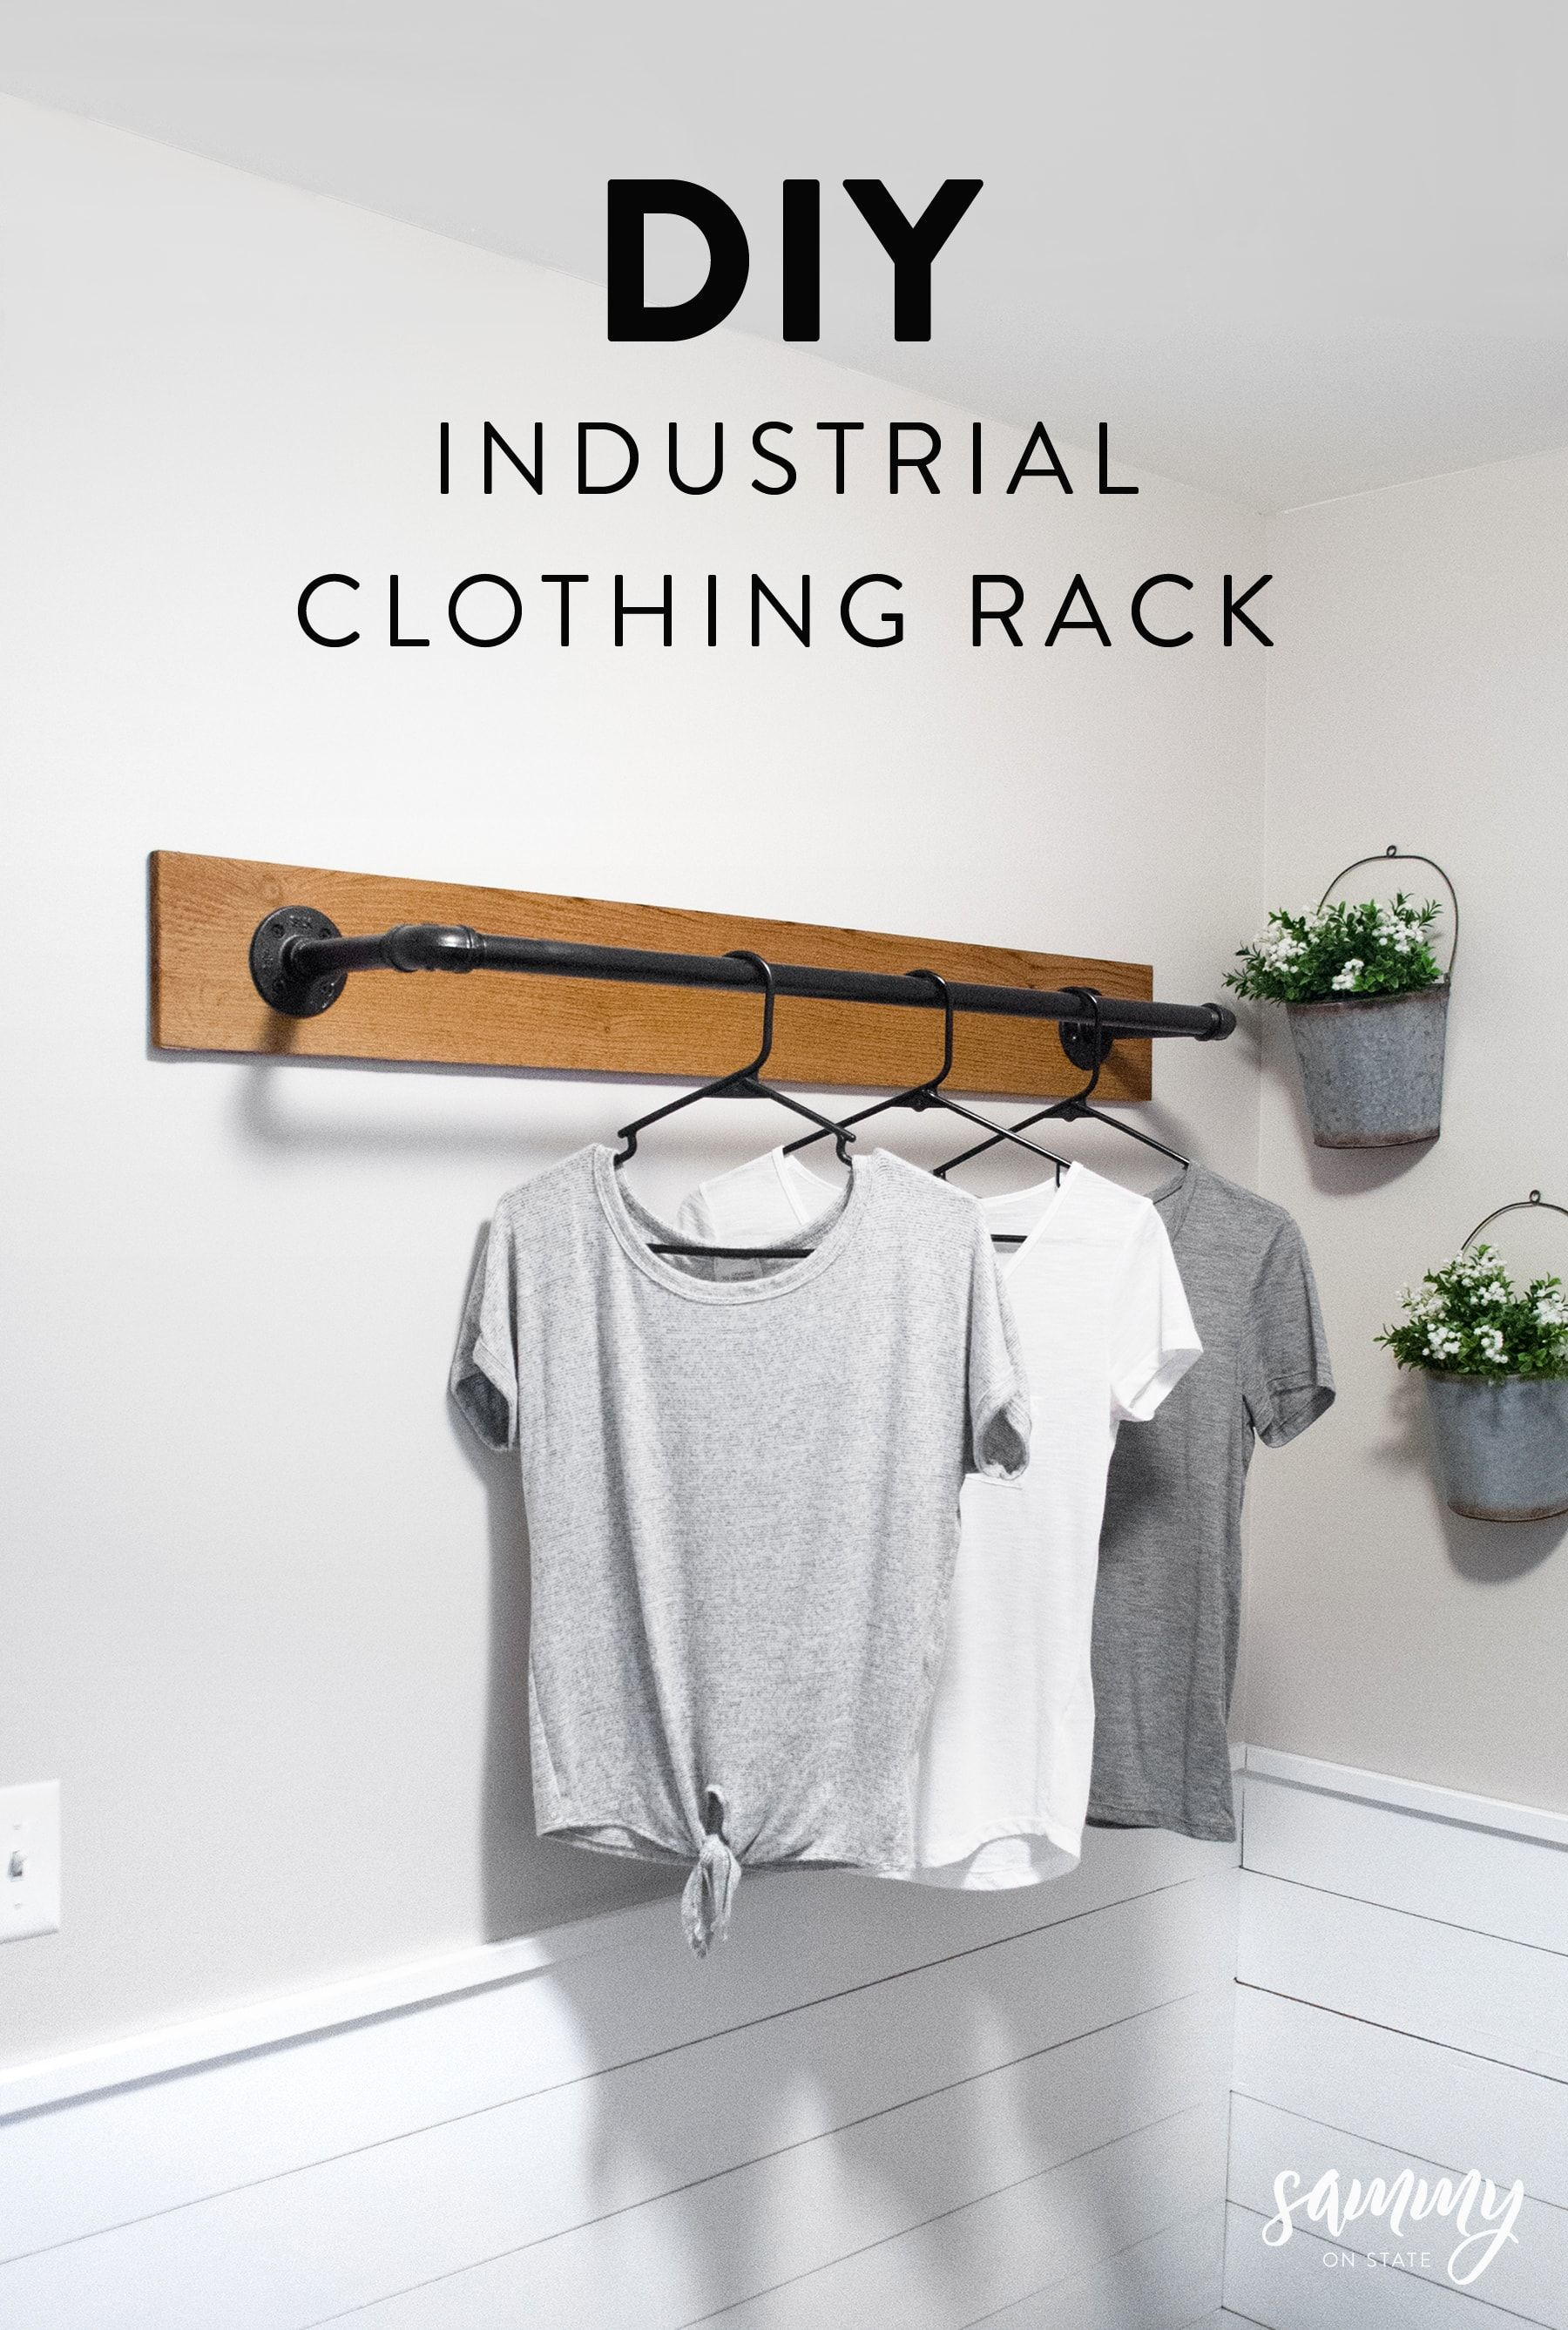 Diy Wall Mounted Clothing Rack Laundry Room Diy Laundry Room Remodel Wall Mounted Clothing Rack